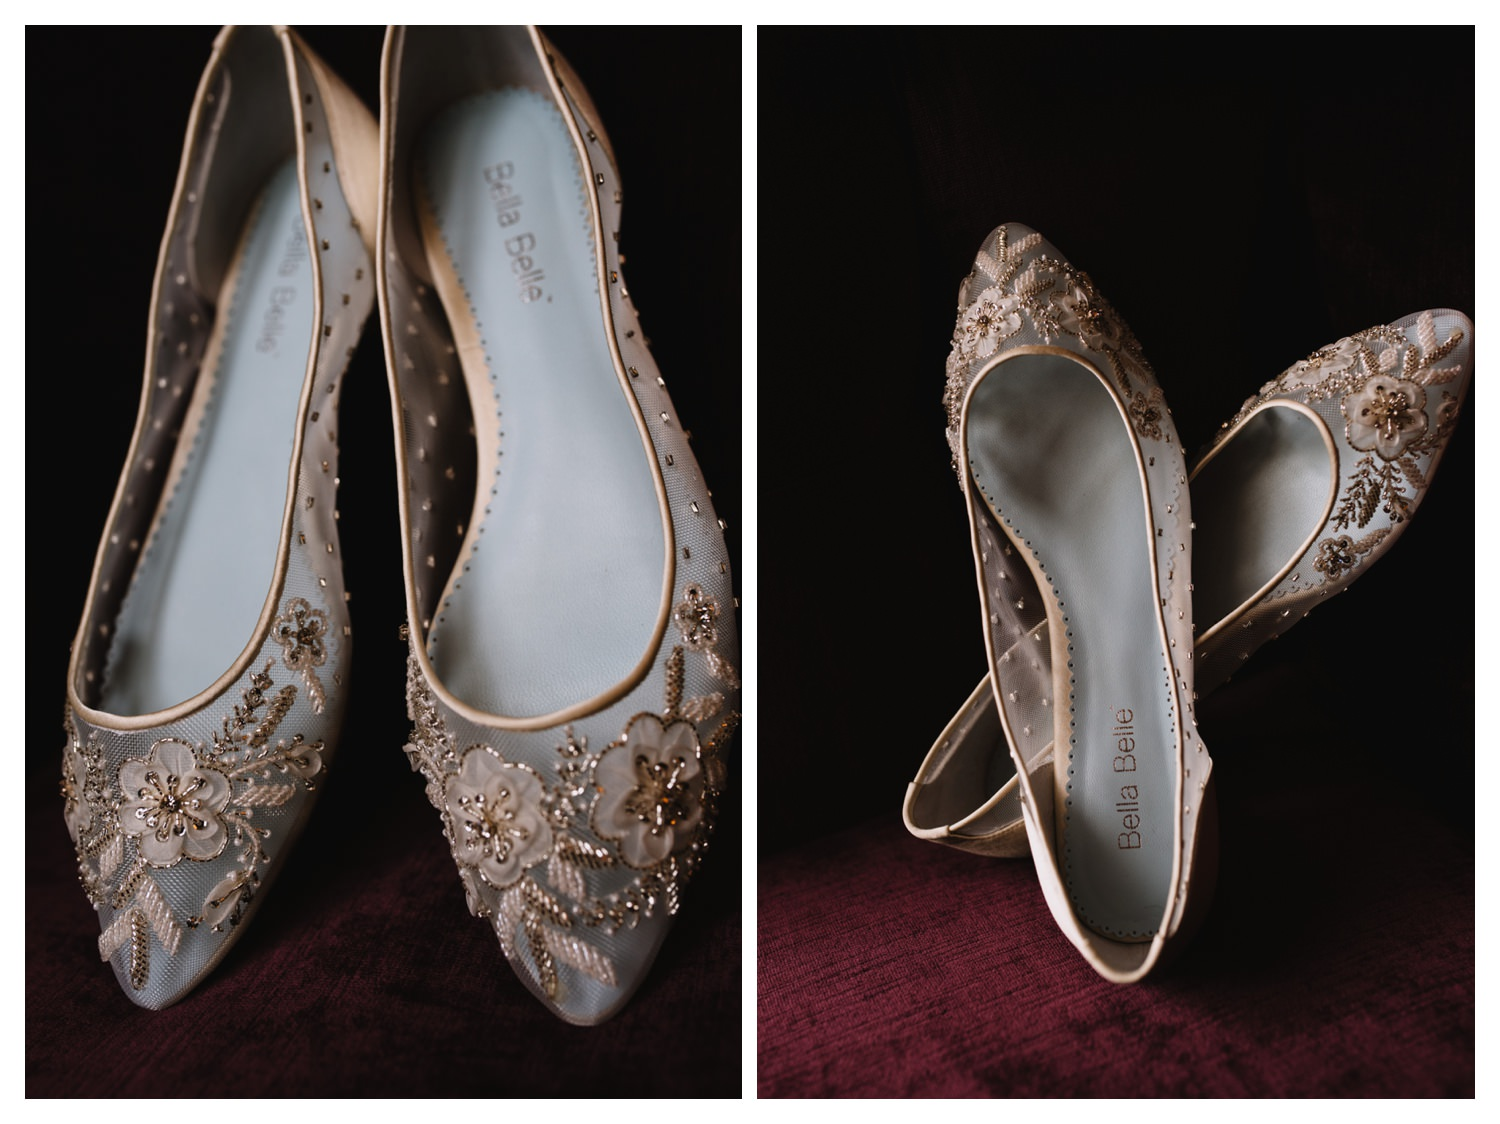 Flat shoes worn on a wedding day